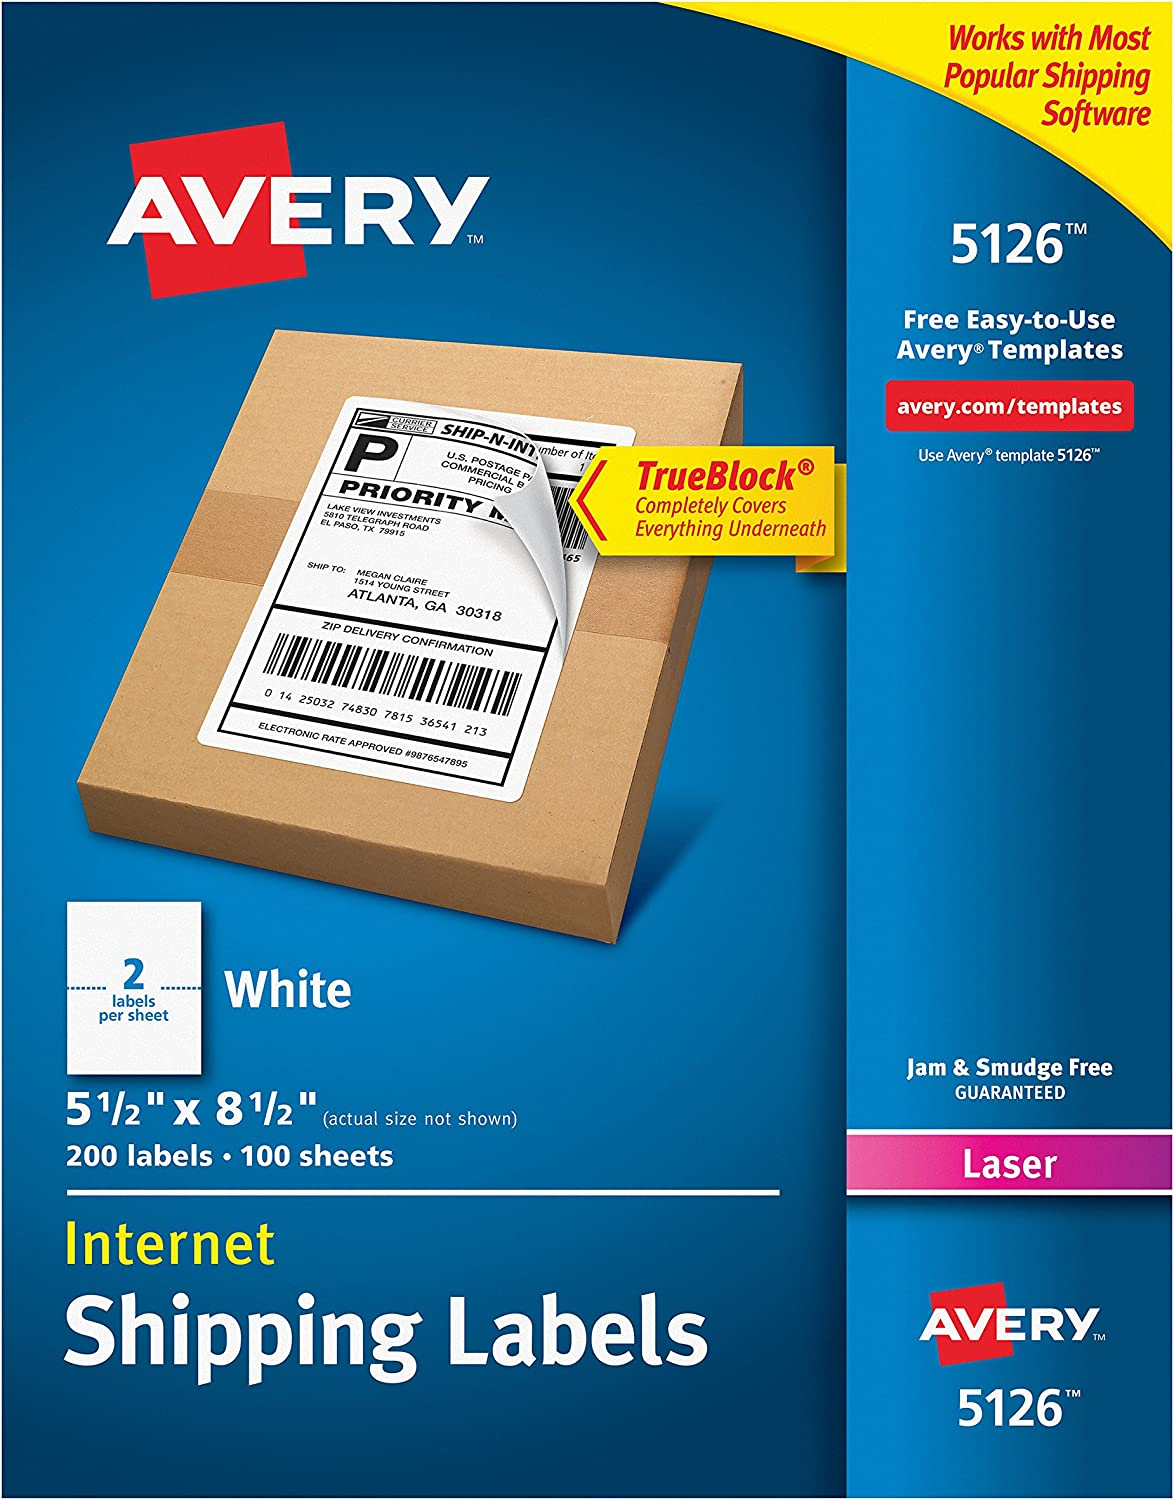 Avery 5126 Shipping Address Labels, Laser Printers, 200 Labels, Half Sheet Labels, Permanent Adhesive, TrueBlock, White : Office Products